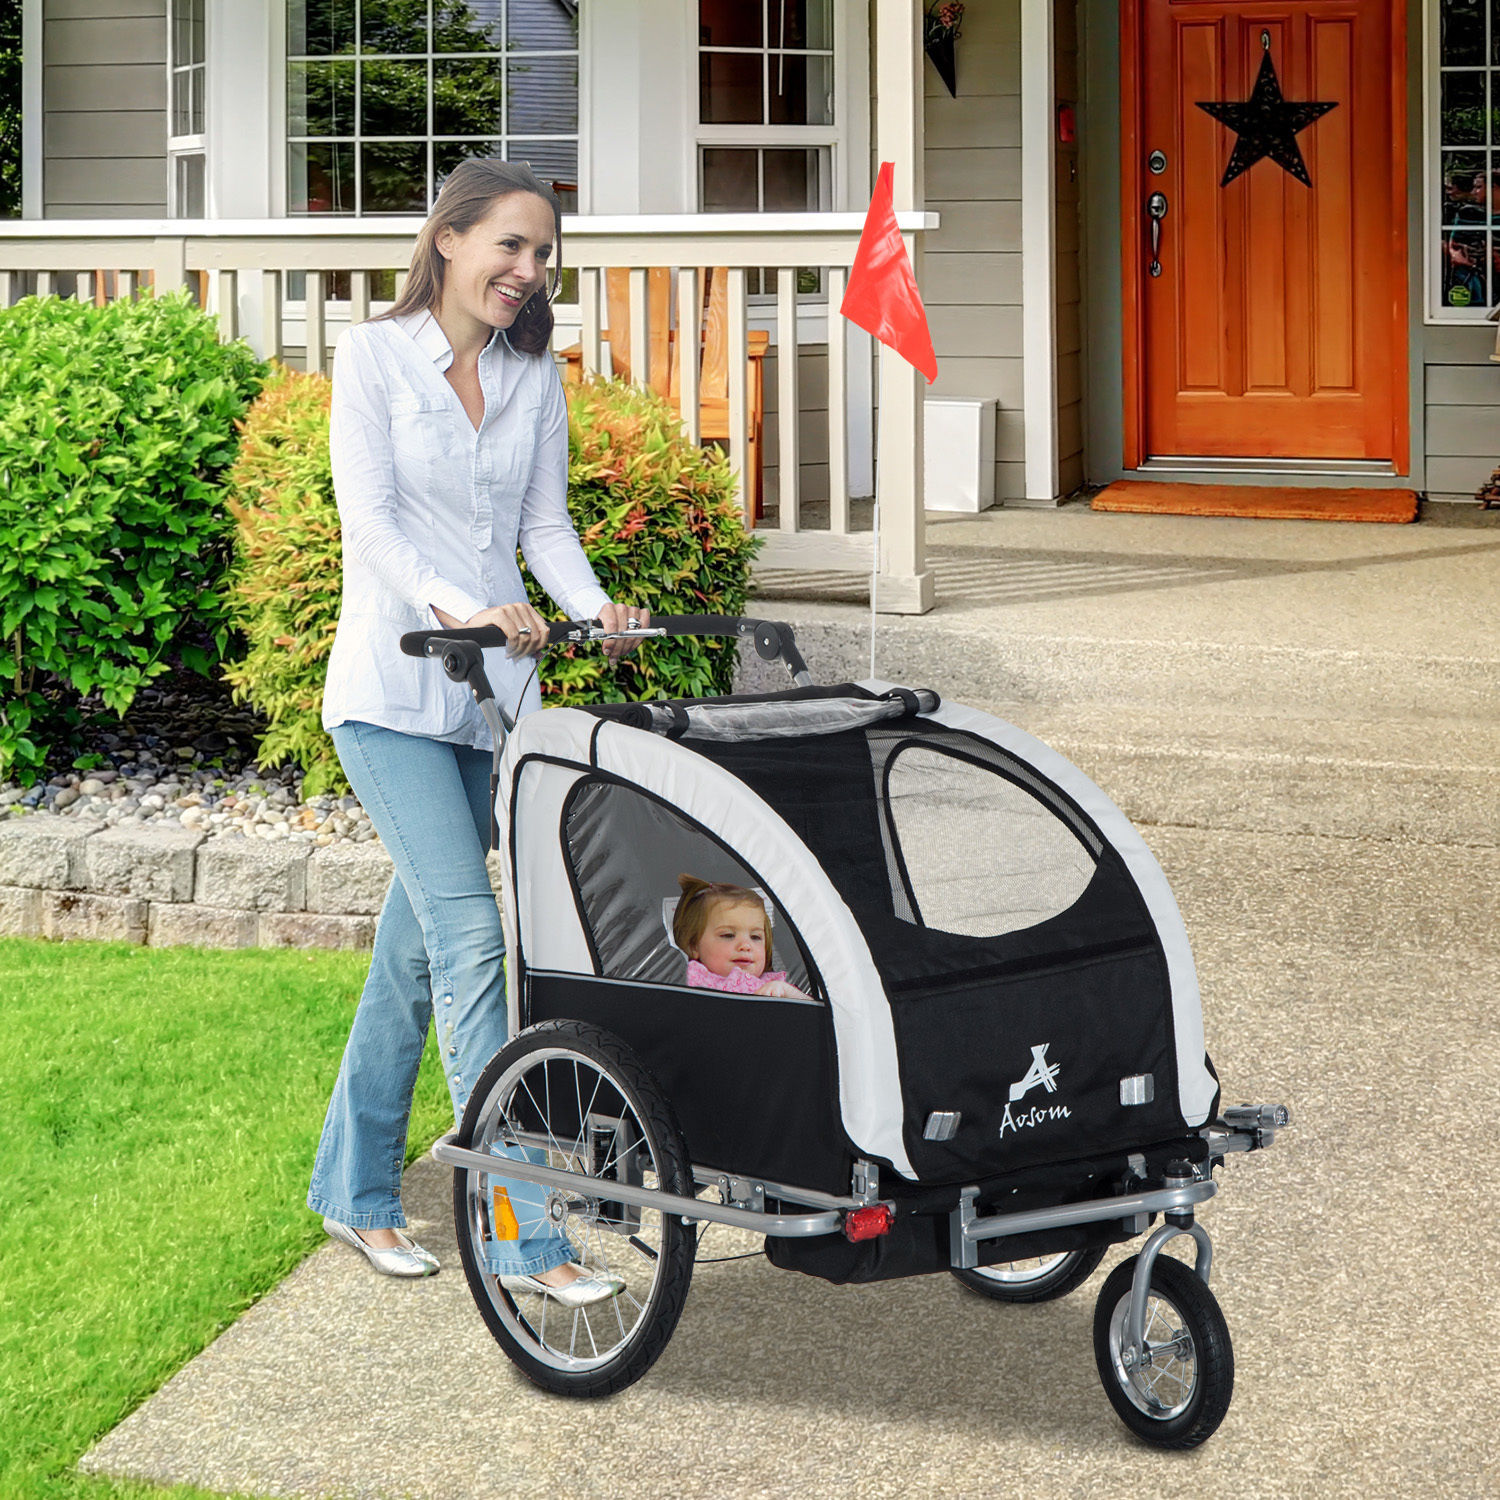 2-Seater-Child-Bike-Trailer-Kids-Carrier-Safety-Harness-Baby-Stroller-Jogger thumbnail 18